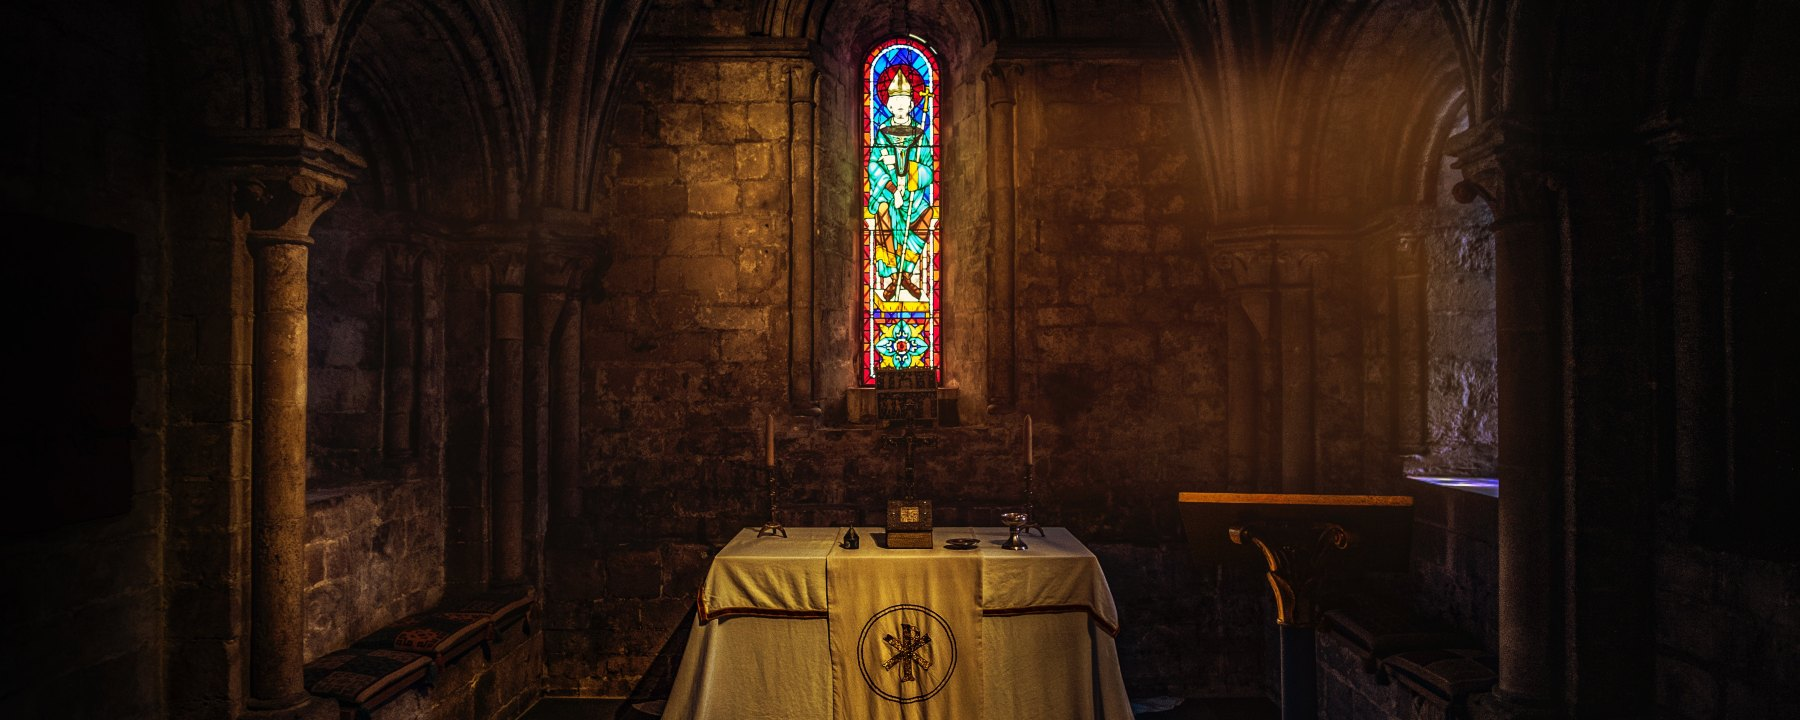 Mass, silence, Church, Divine Presence, Eucharist